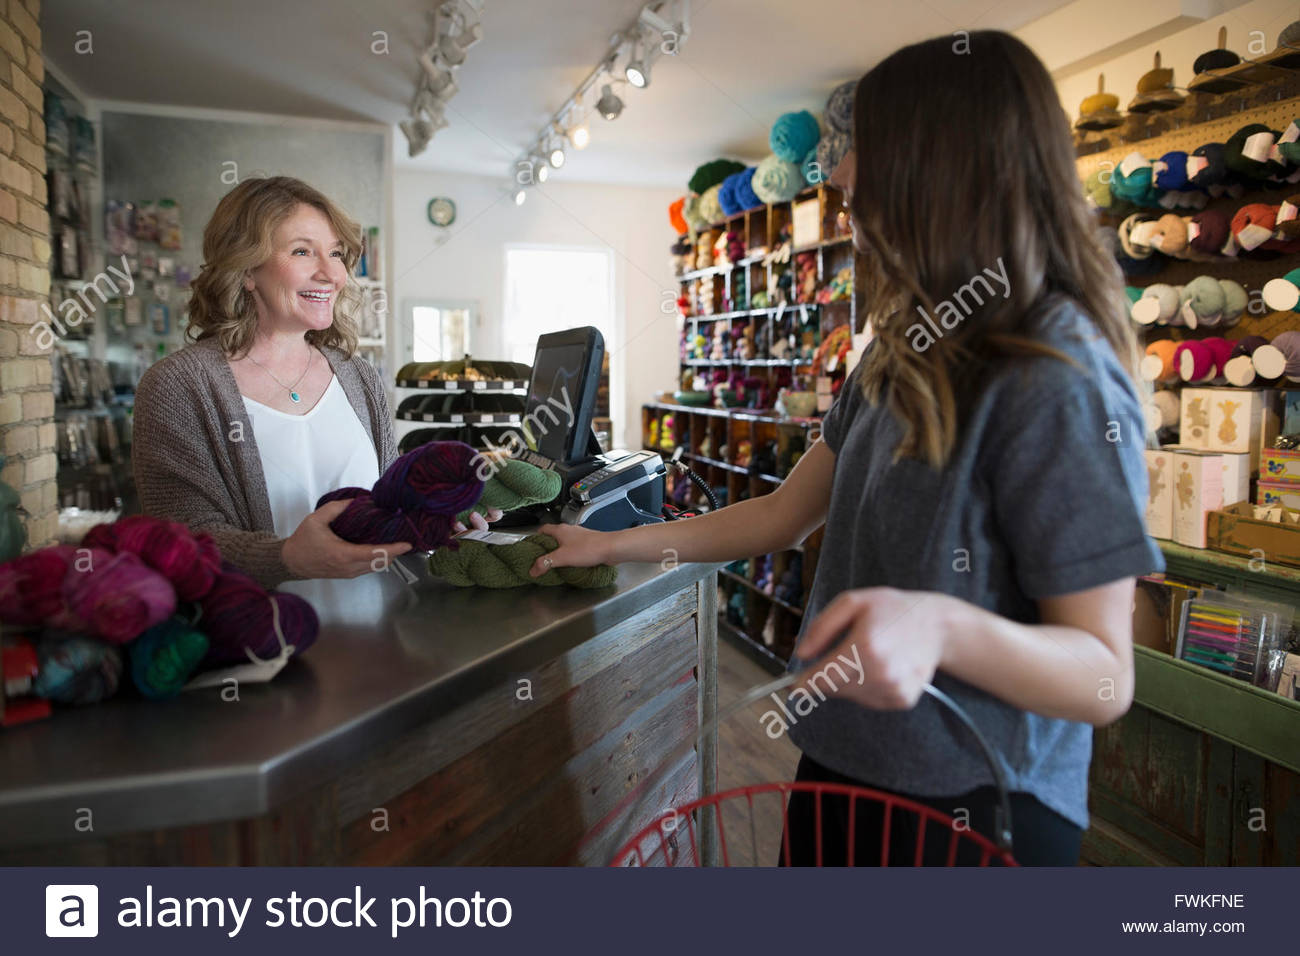 Shopper checking out at yarn store counter - Stock Image